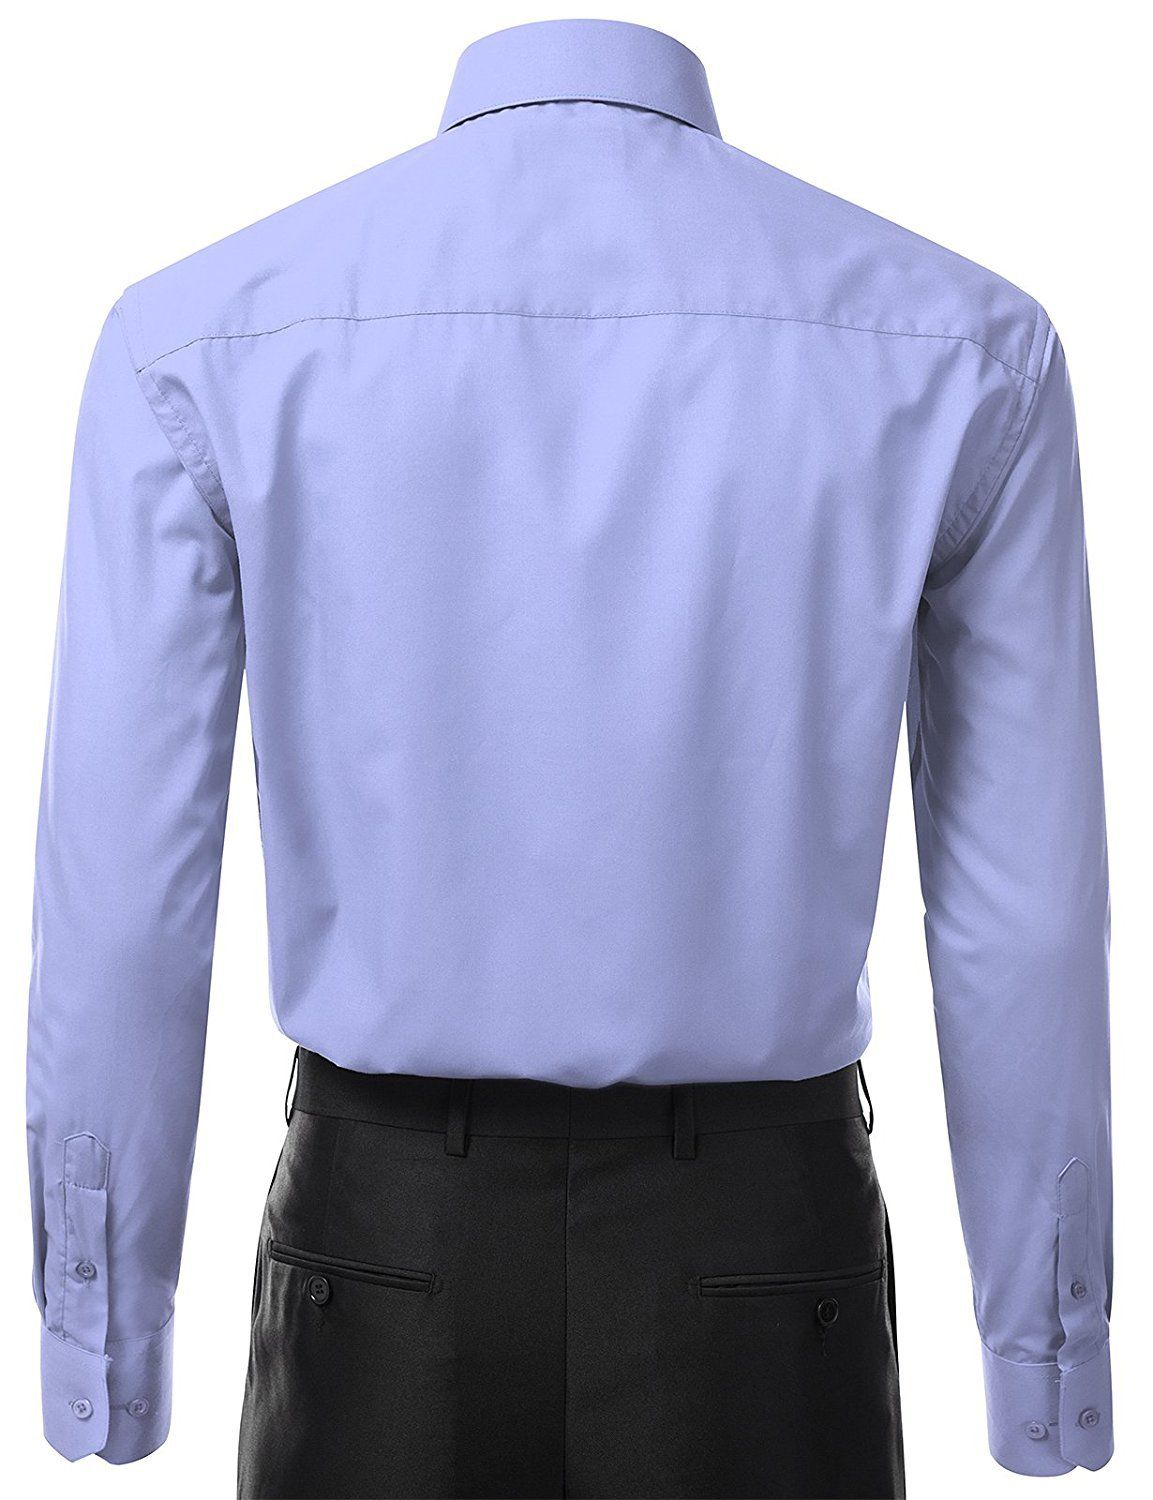 Berlioni-Italy-Men-039-s-Premium-Classic-French-Convertible-Cuff-Solid-Dress-Shirt thumbnail 17